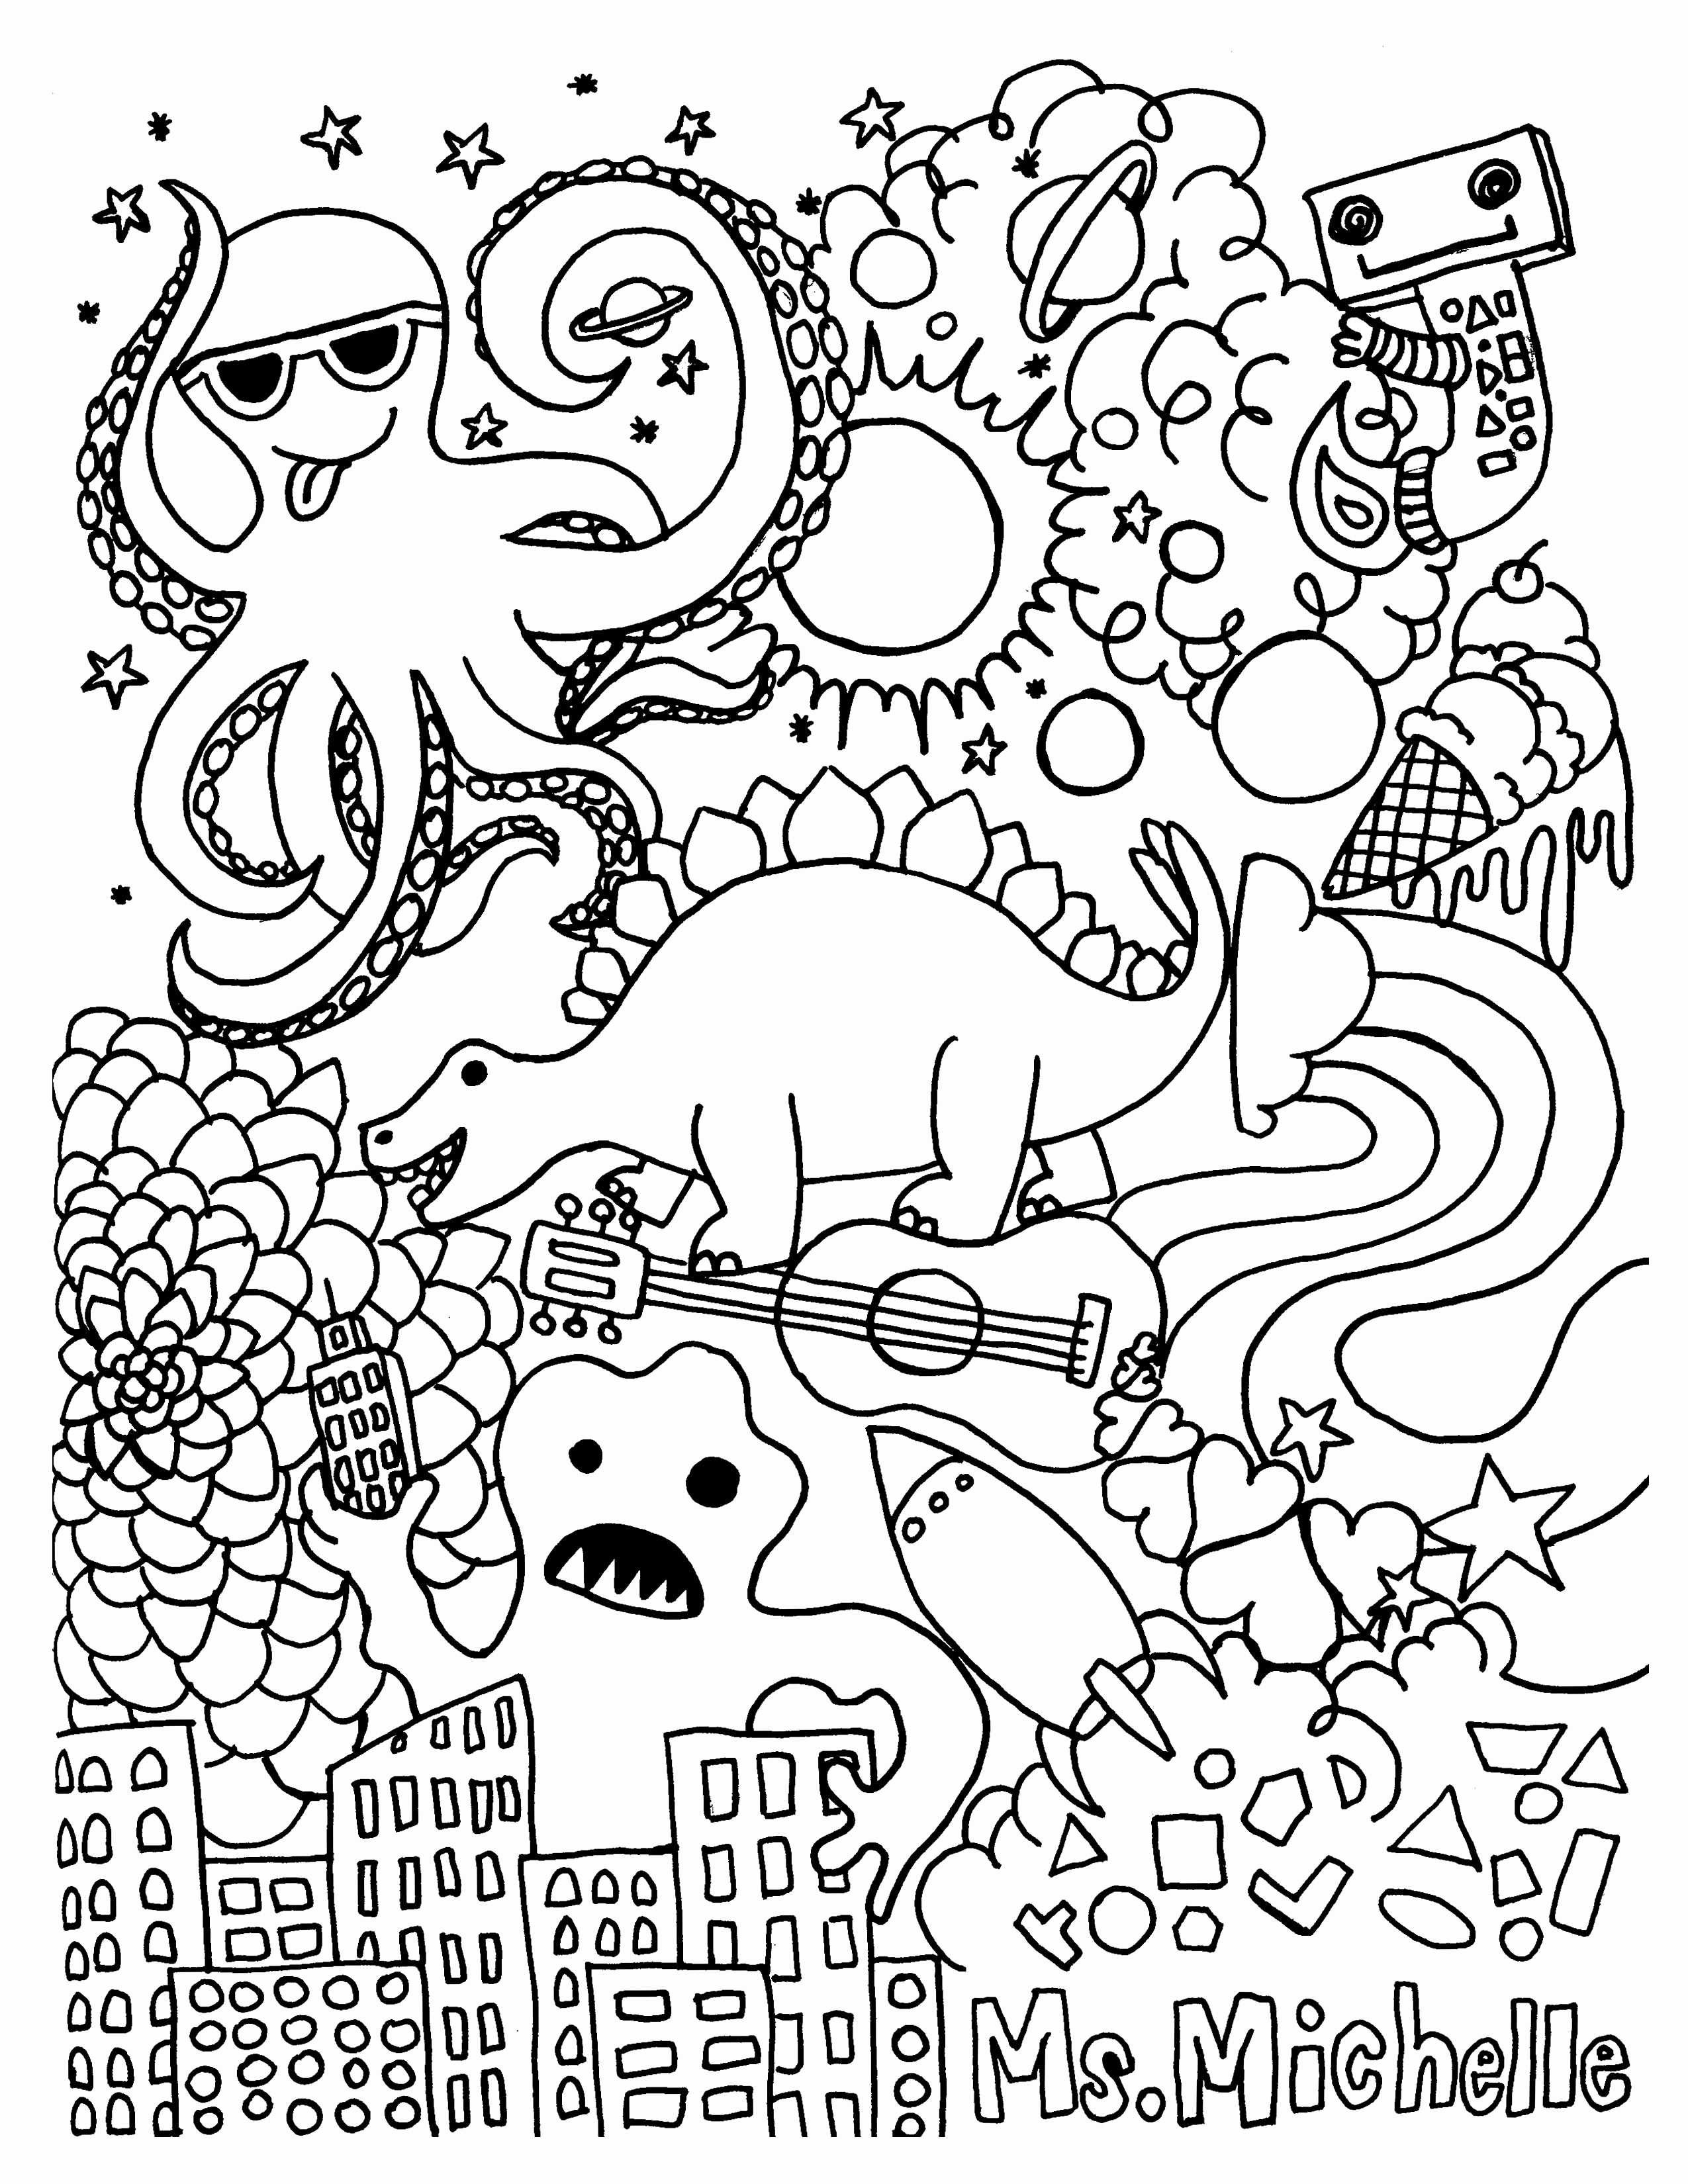 nickolodean coloring pages Download-Free Coloring Pages for Adults Halloween Free Coloring Pages Bible Awesome Free Coloring Pages for 20-k